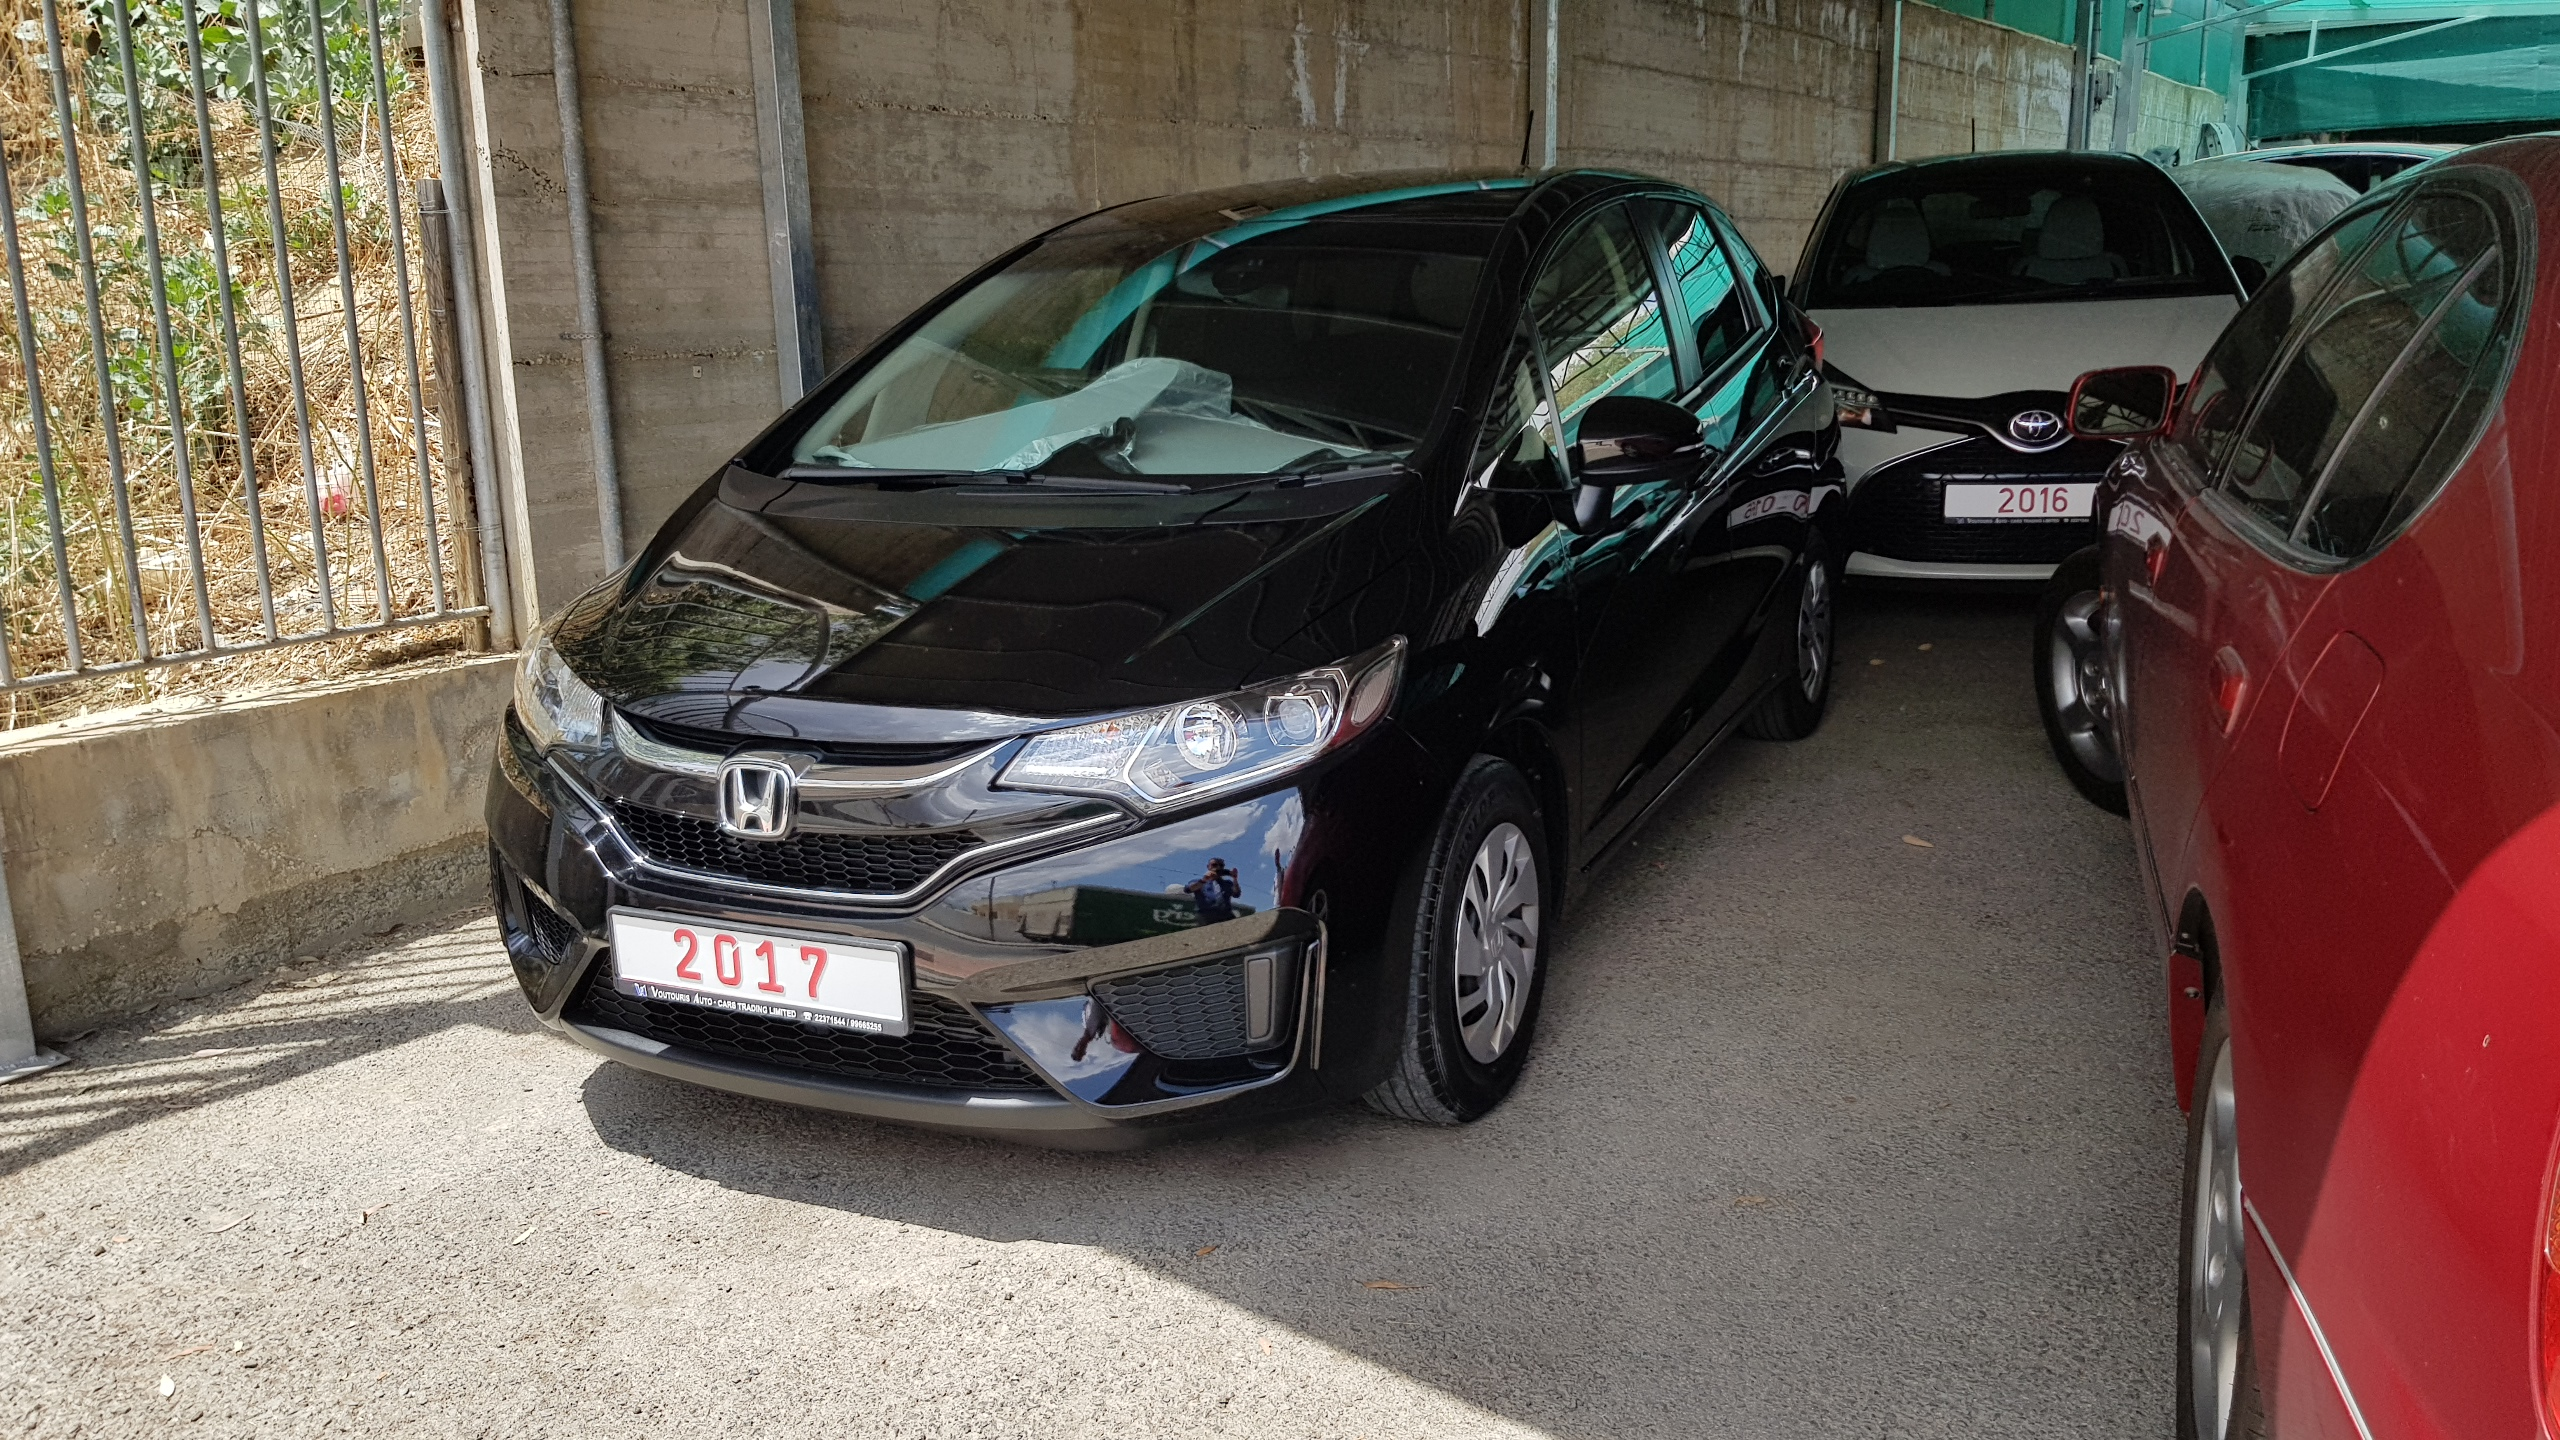 Honda Fit 2017 Black 01